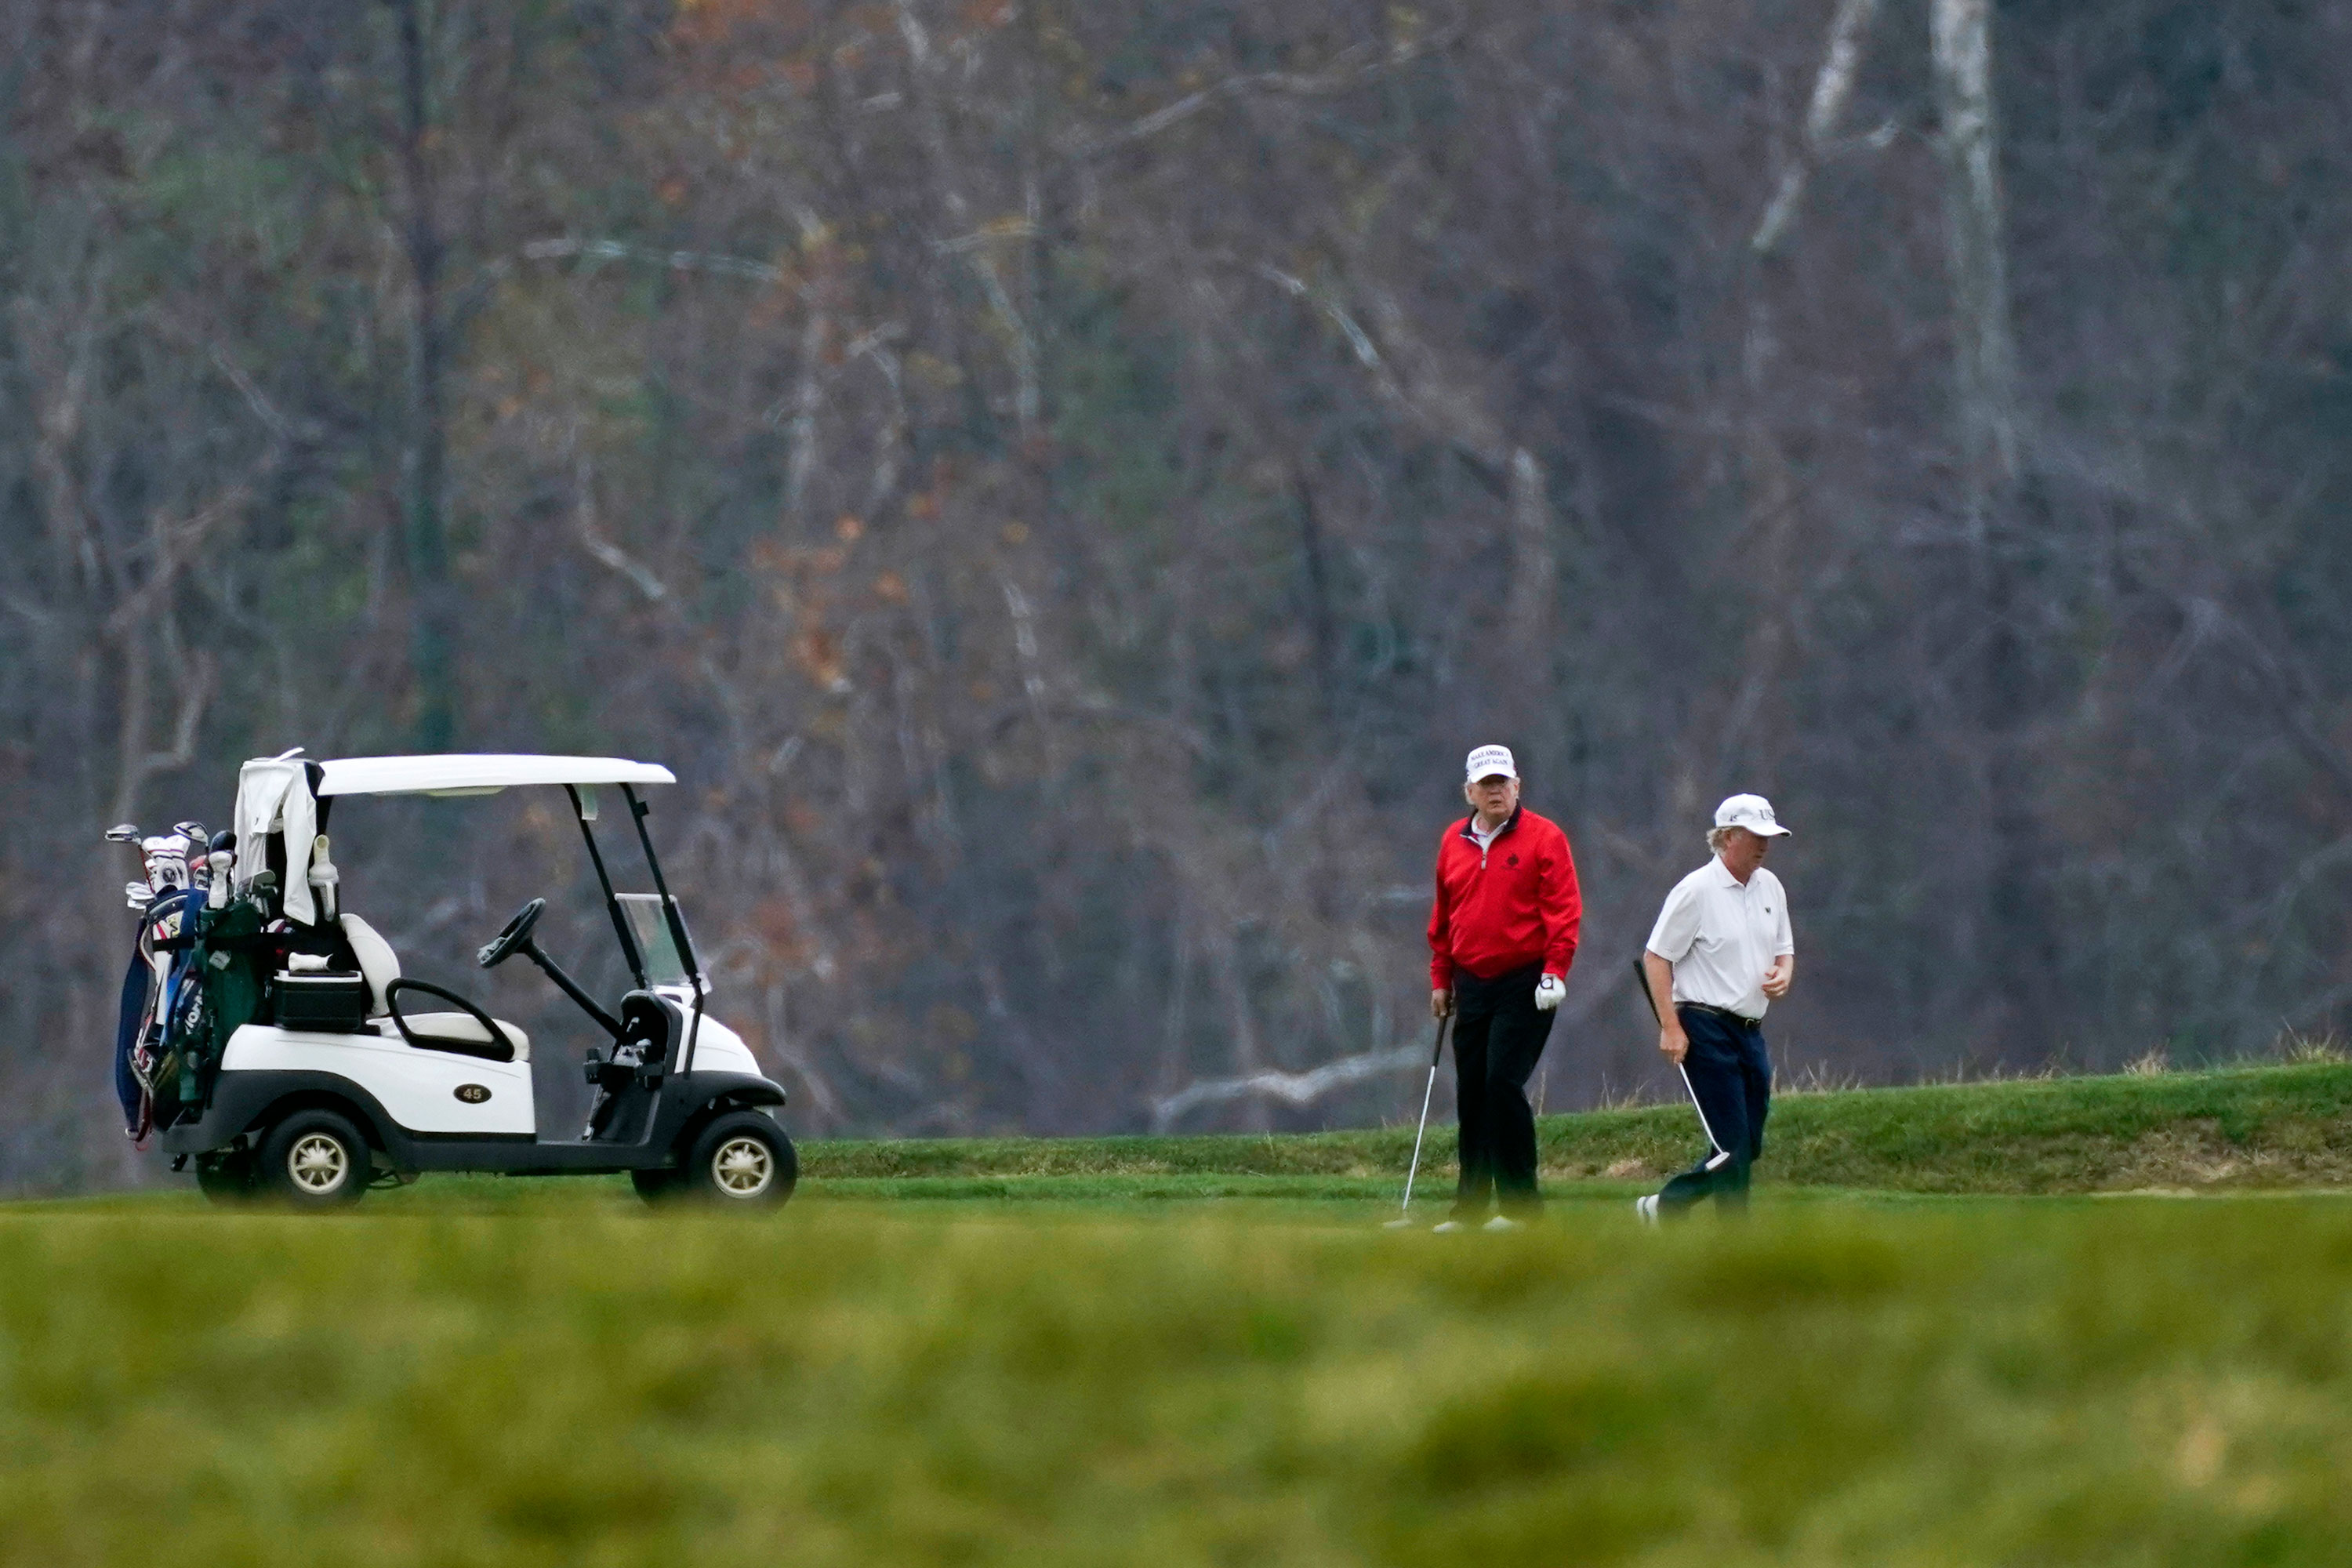 President Donald Trump plays golf at Trump National Golf Club in Sterling, Virginia on Saturday, November 21.